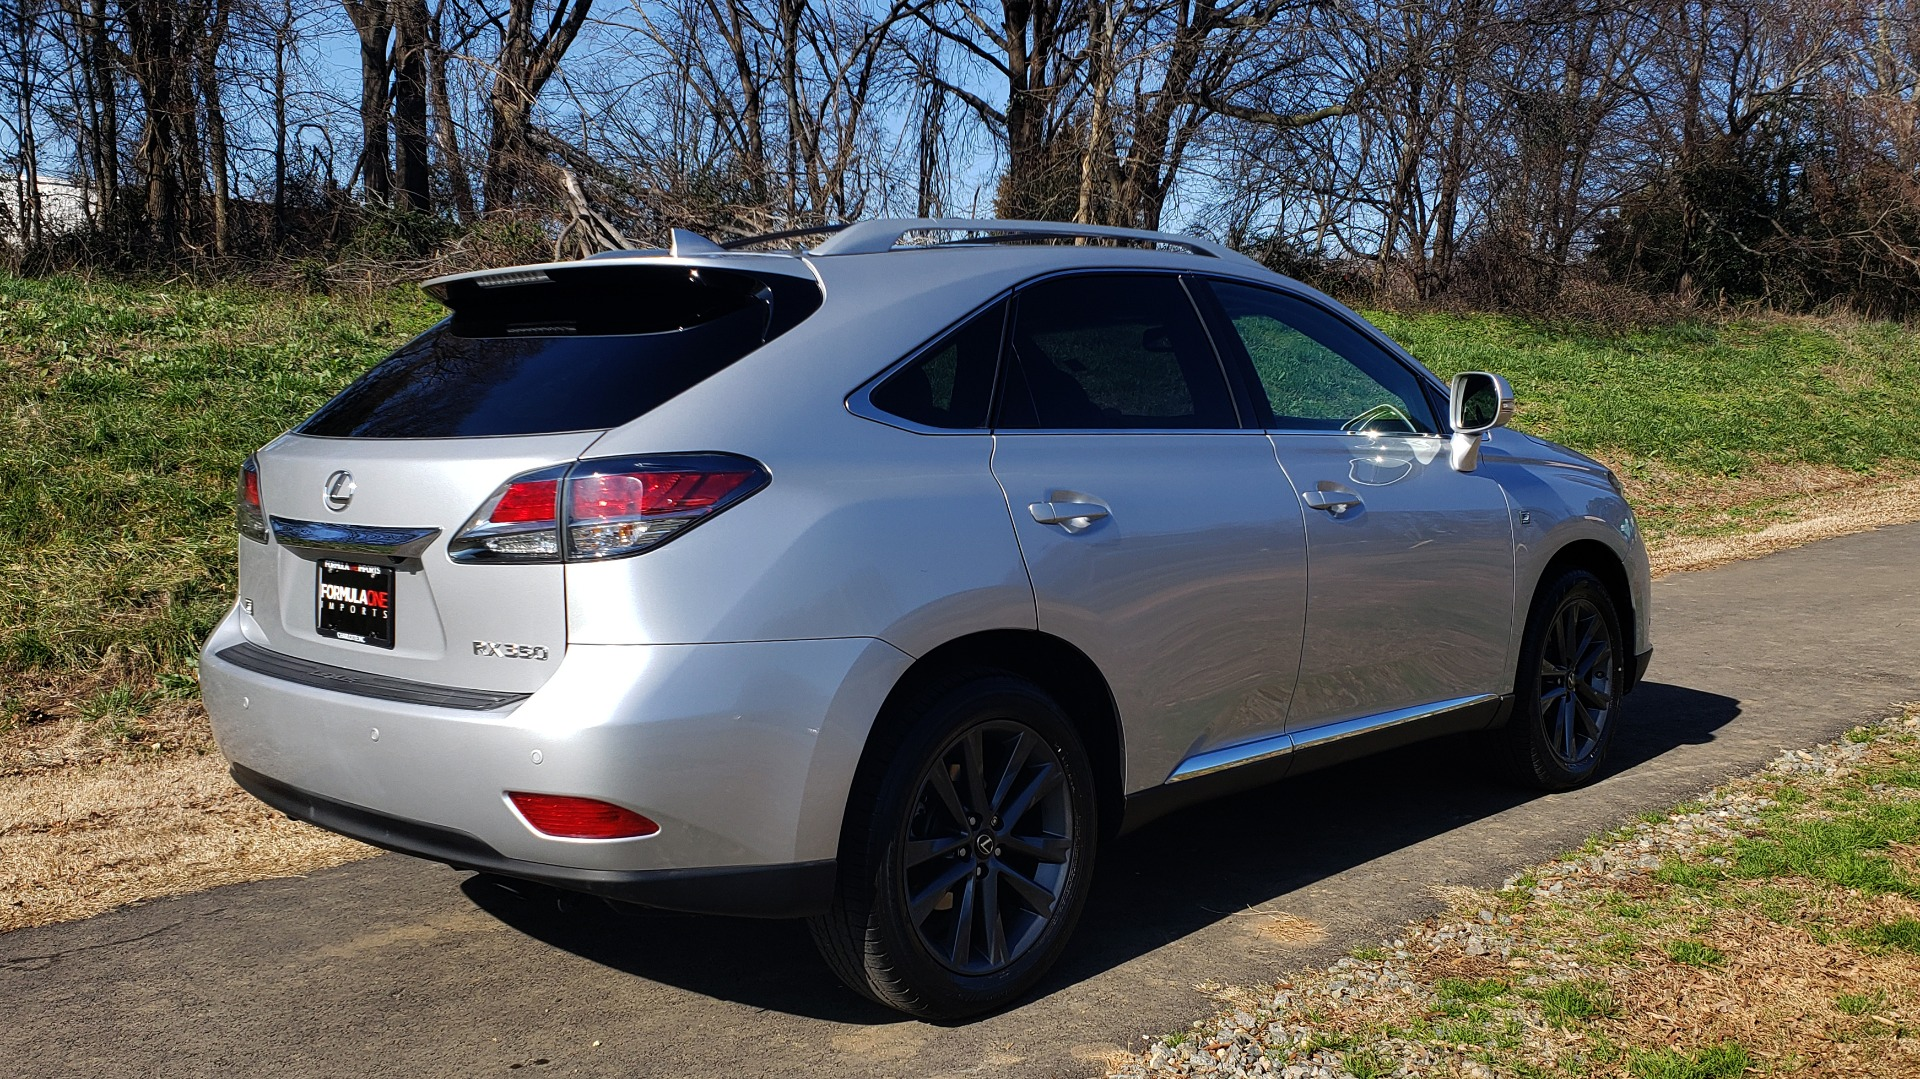 Used 2015 Lexus RX350 AWD F-SPORT / NAV / SUNROOF / BSM / PARK ASST / REARVIEW for sale Sold at Formula Imports in Charlotte NC 28227 6